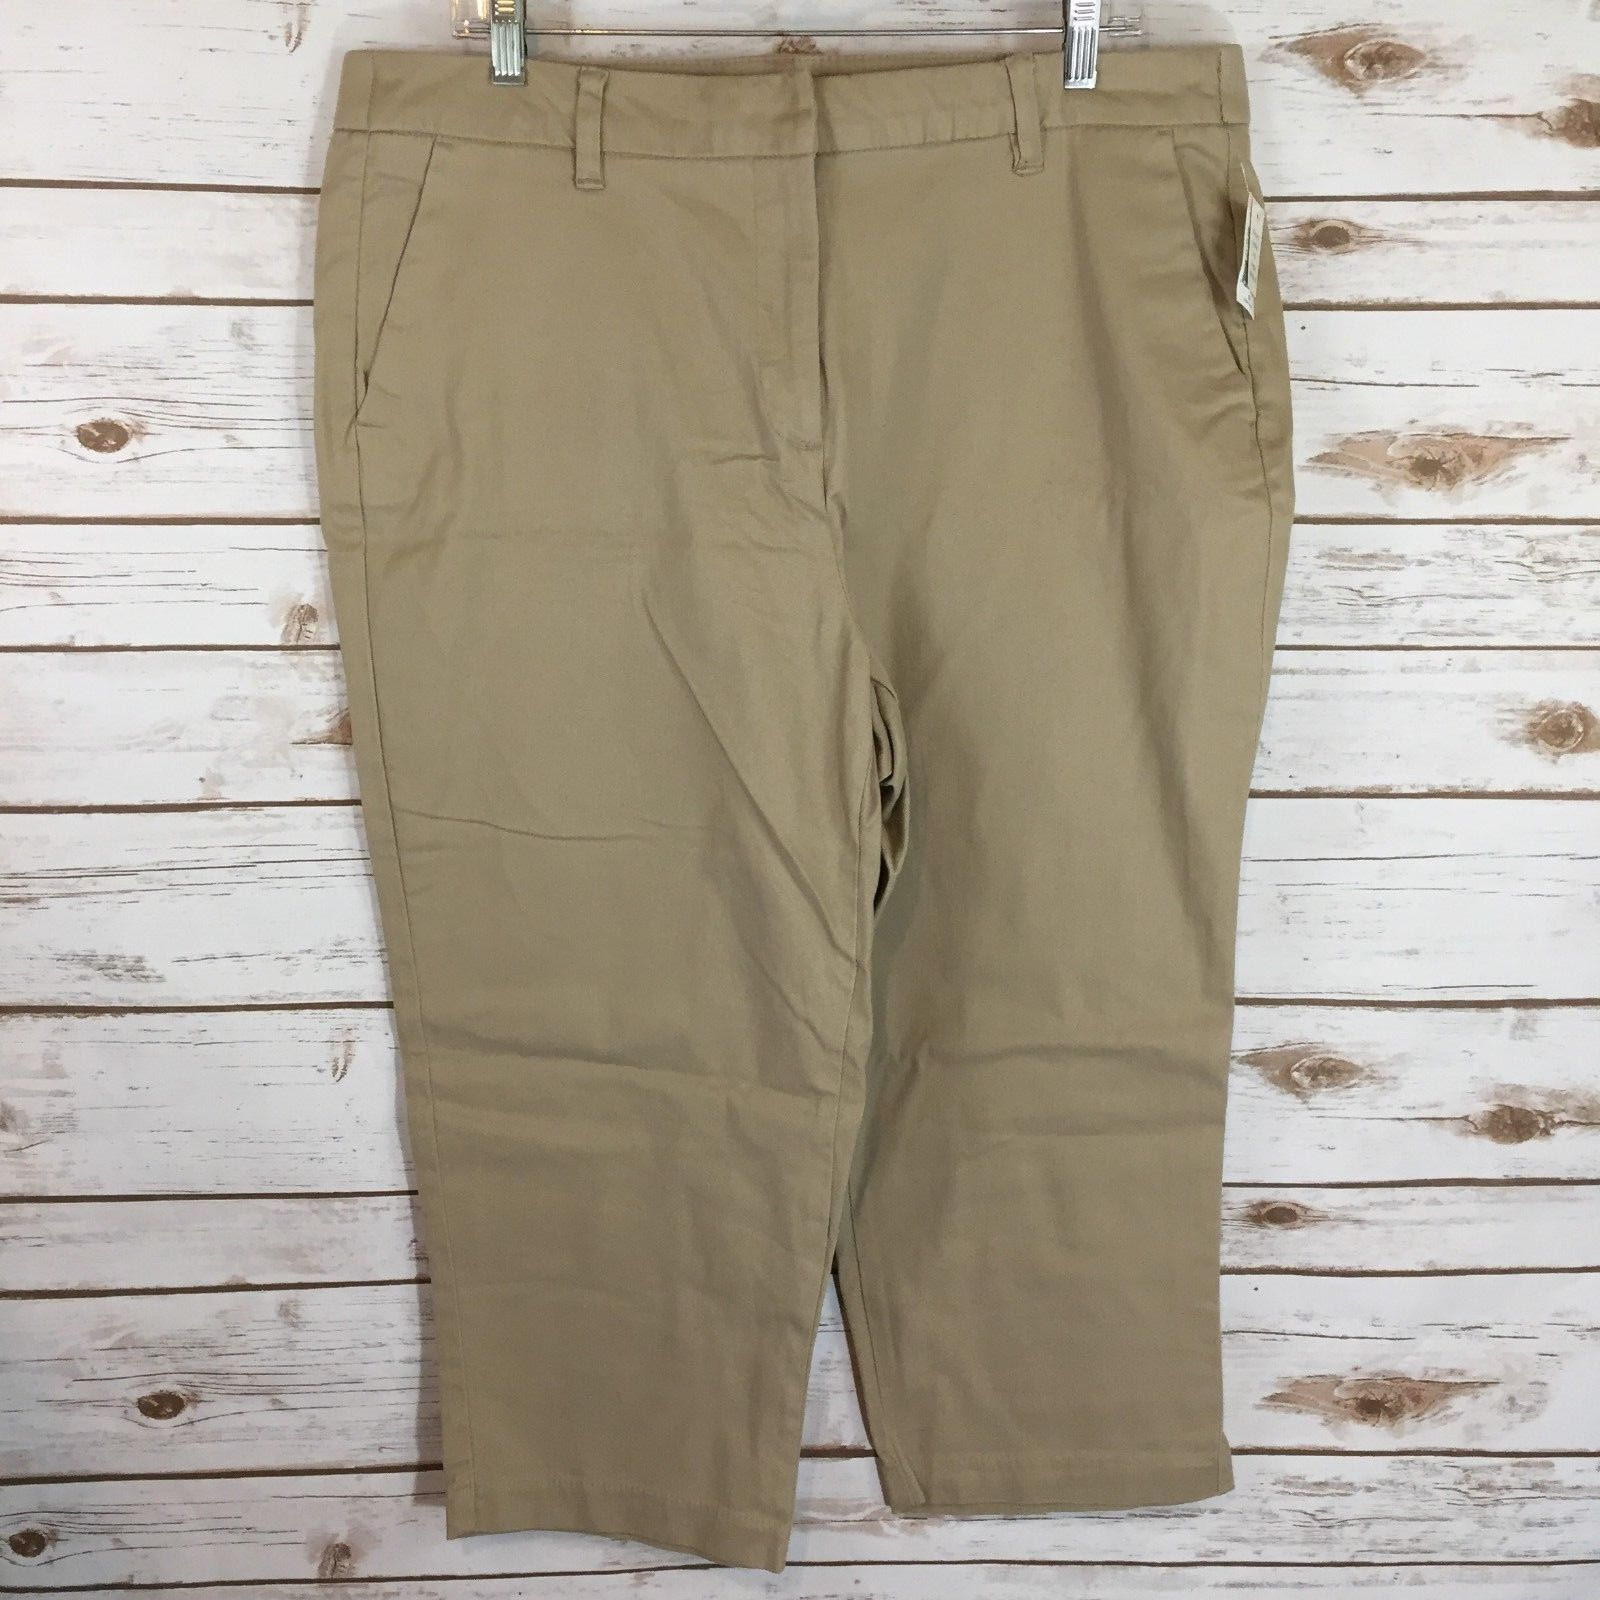 Size 18 NWT Gap Womens Black Stretch Cargo Pants with Buttons at the Ankle